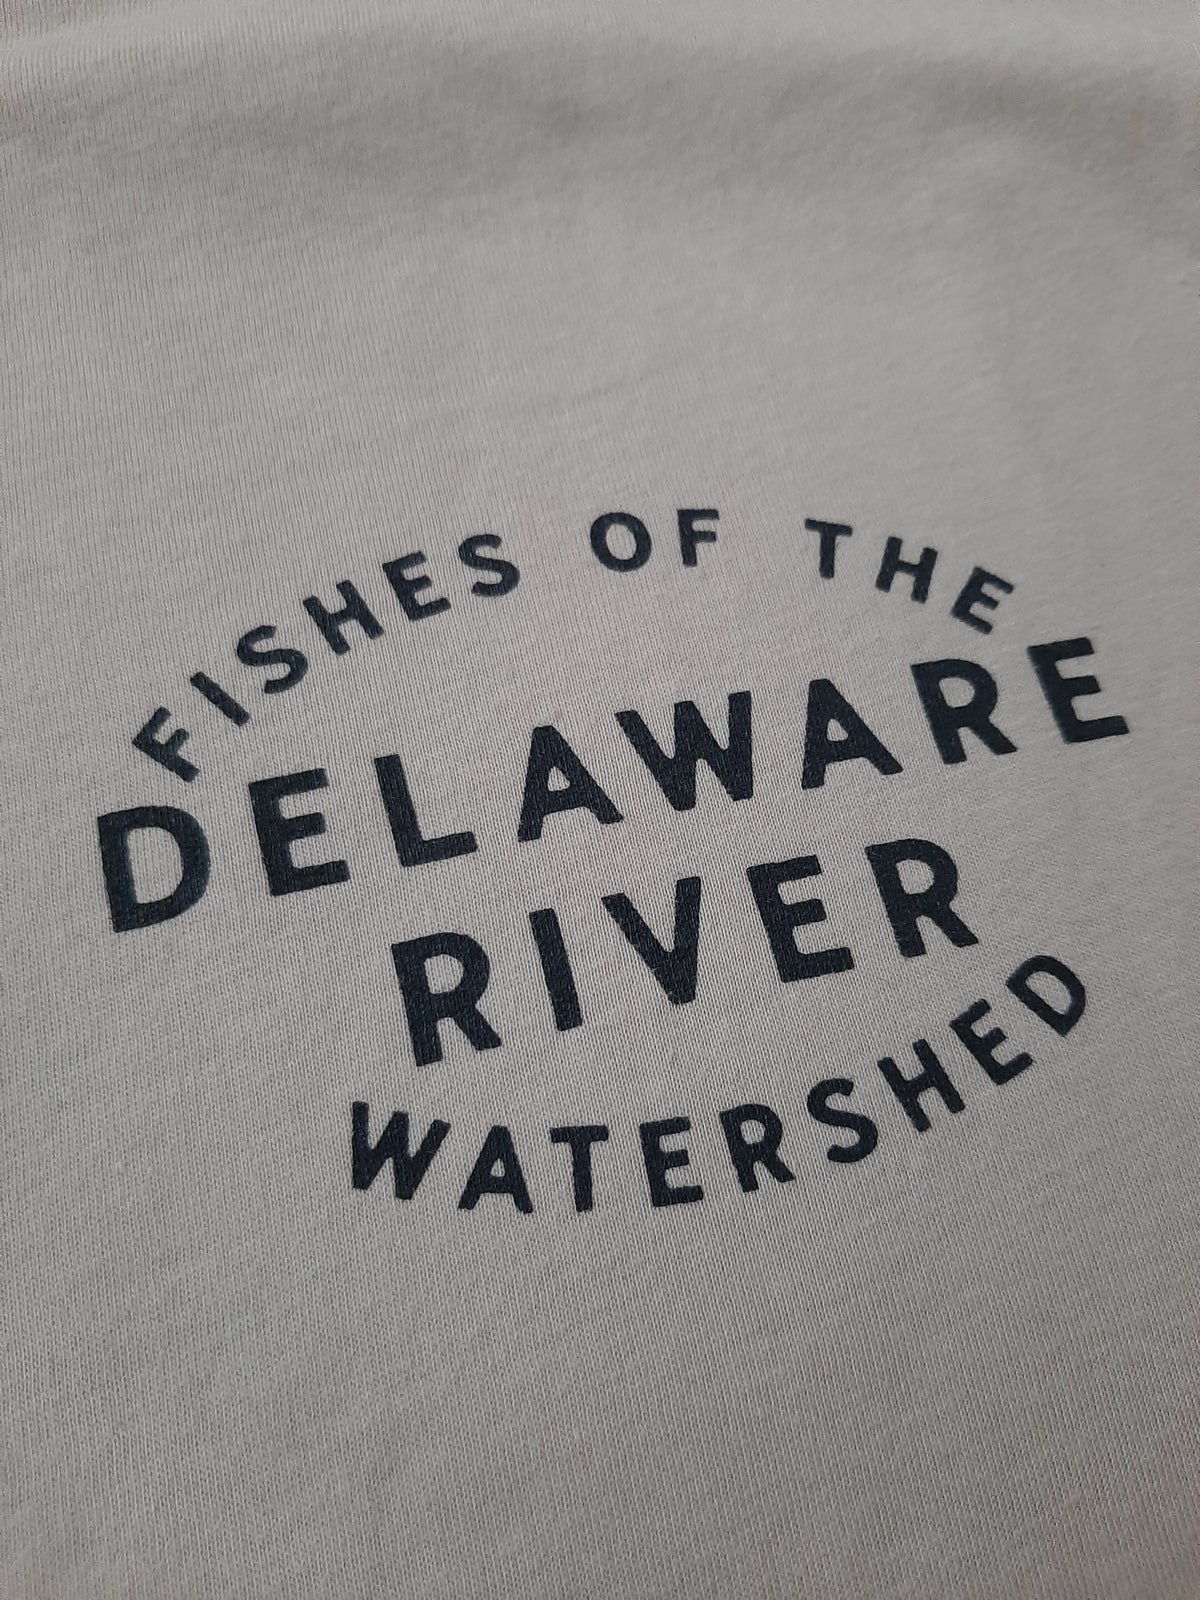 Image of Fishes of the Delaware t-shirt